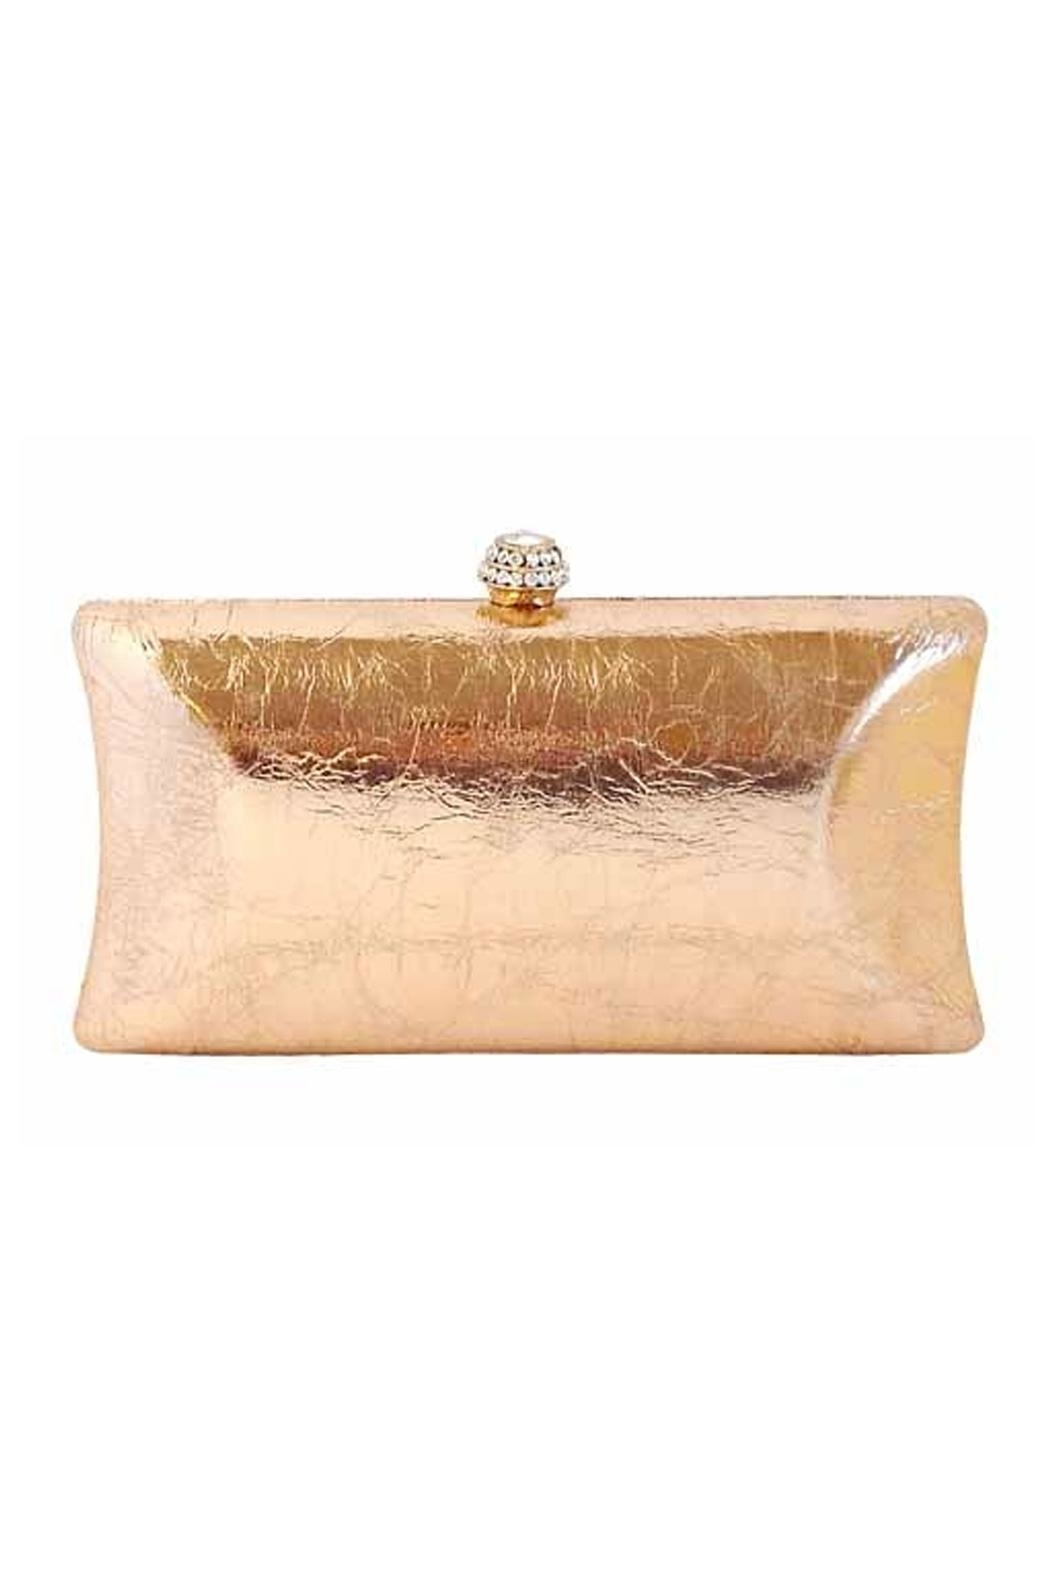 Wild Lilies Jewelry  Rose Gold Clutch - Main Image